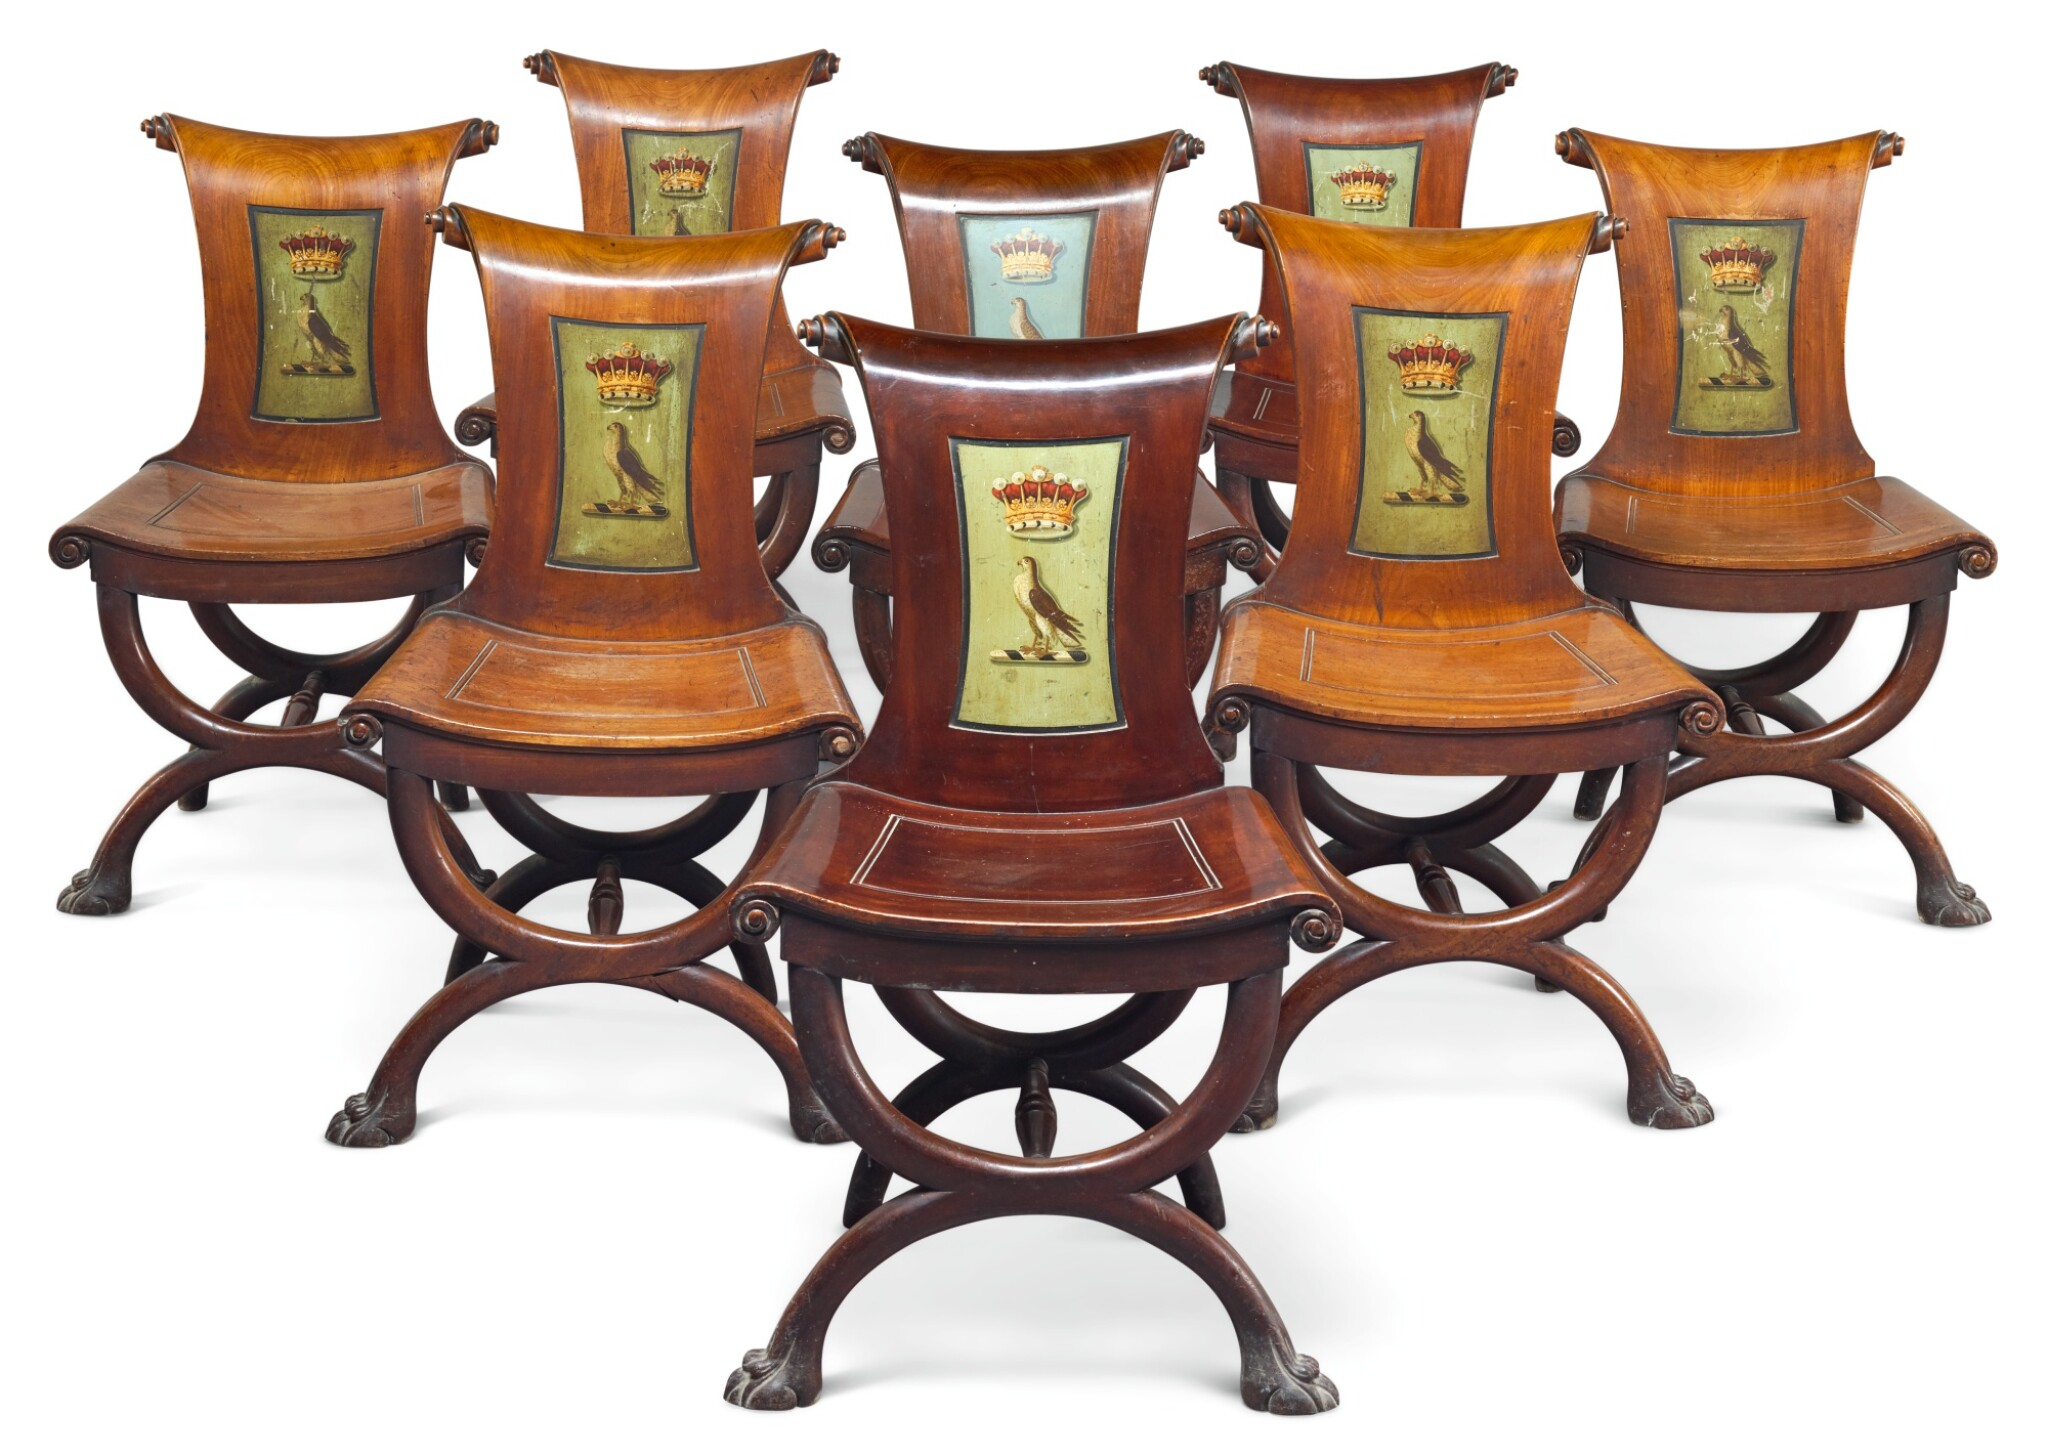 View full screen - View 1 of Lot 1. A SET OF EIGHT IRISH GEORGE III MAHOGANY HALL CHAIRS, LATE 18TH CENTURY/EARLY 19TH CENTURY.